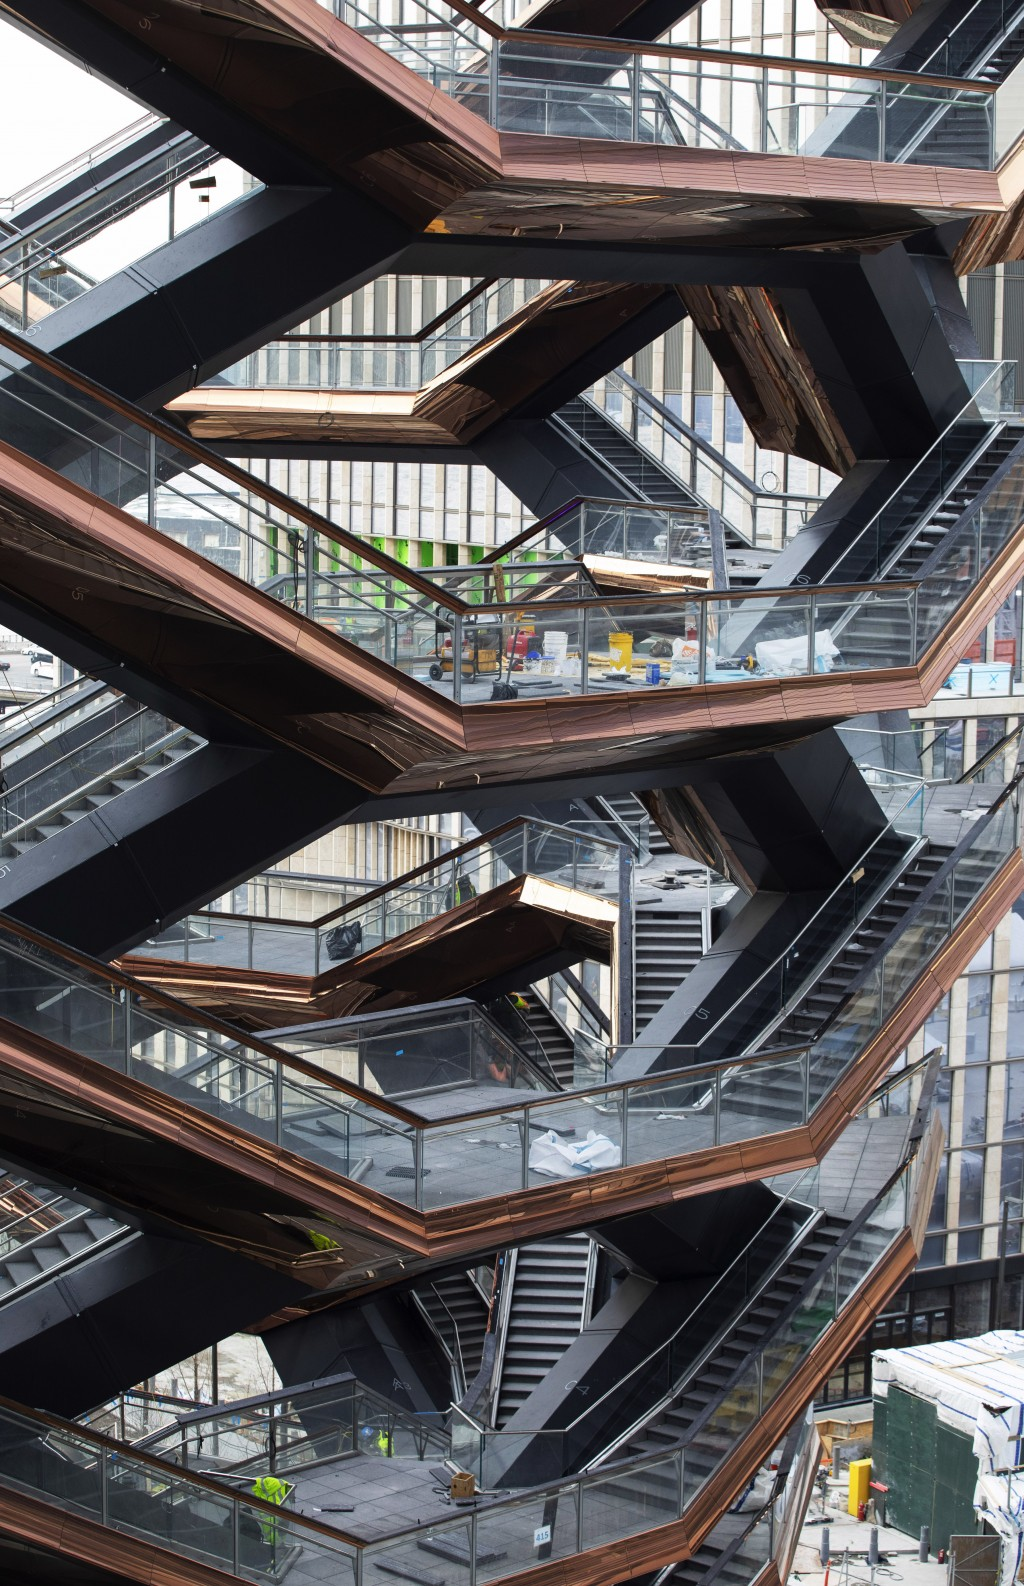 """This March 8, 2019 photo shows the stairs of the """"Vessel,"""" a 150-foot-tall structure in New York. The Thomas Heatherwick design opens to the public Fr"""